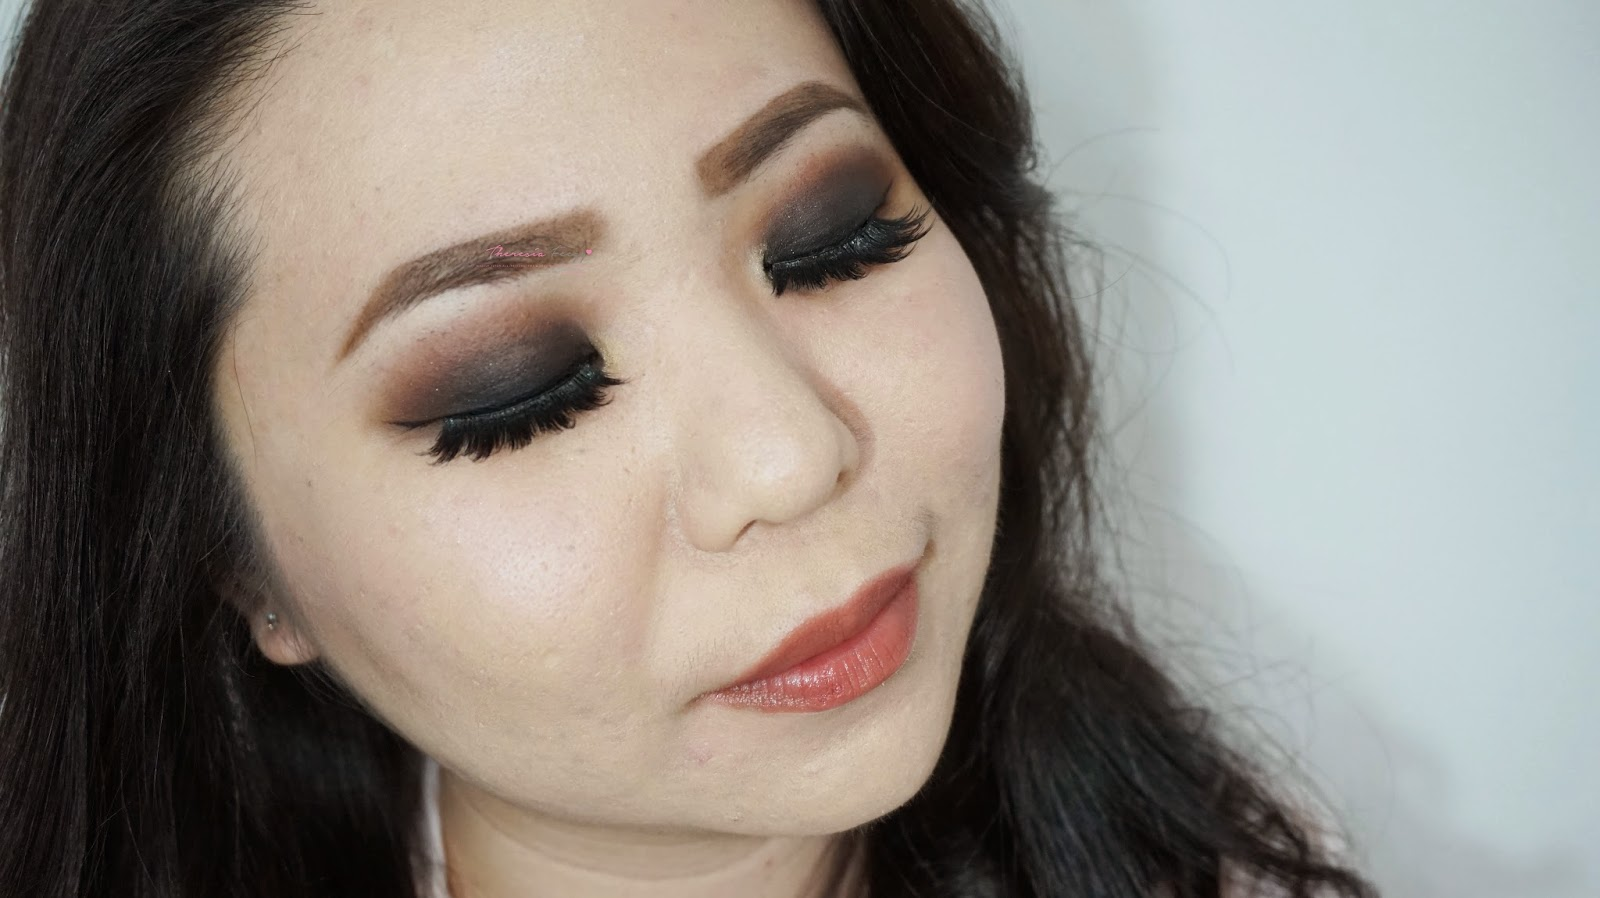 A classic smokey eyes makeup tutorial with a simple and basic technique for beginners and professional out there. A technique that is quick to apply on a daily basis. Using Sariayu color trend 2014 Borneo in B03, a pigmented, perfect small kit for day and night neutral look in an affordable price.